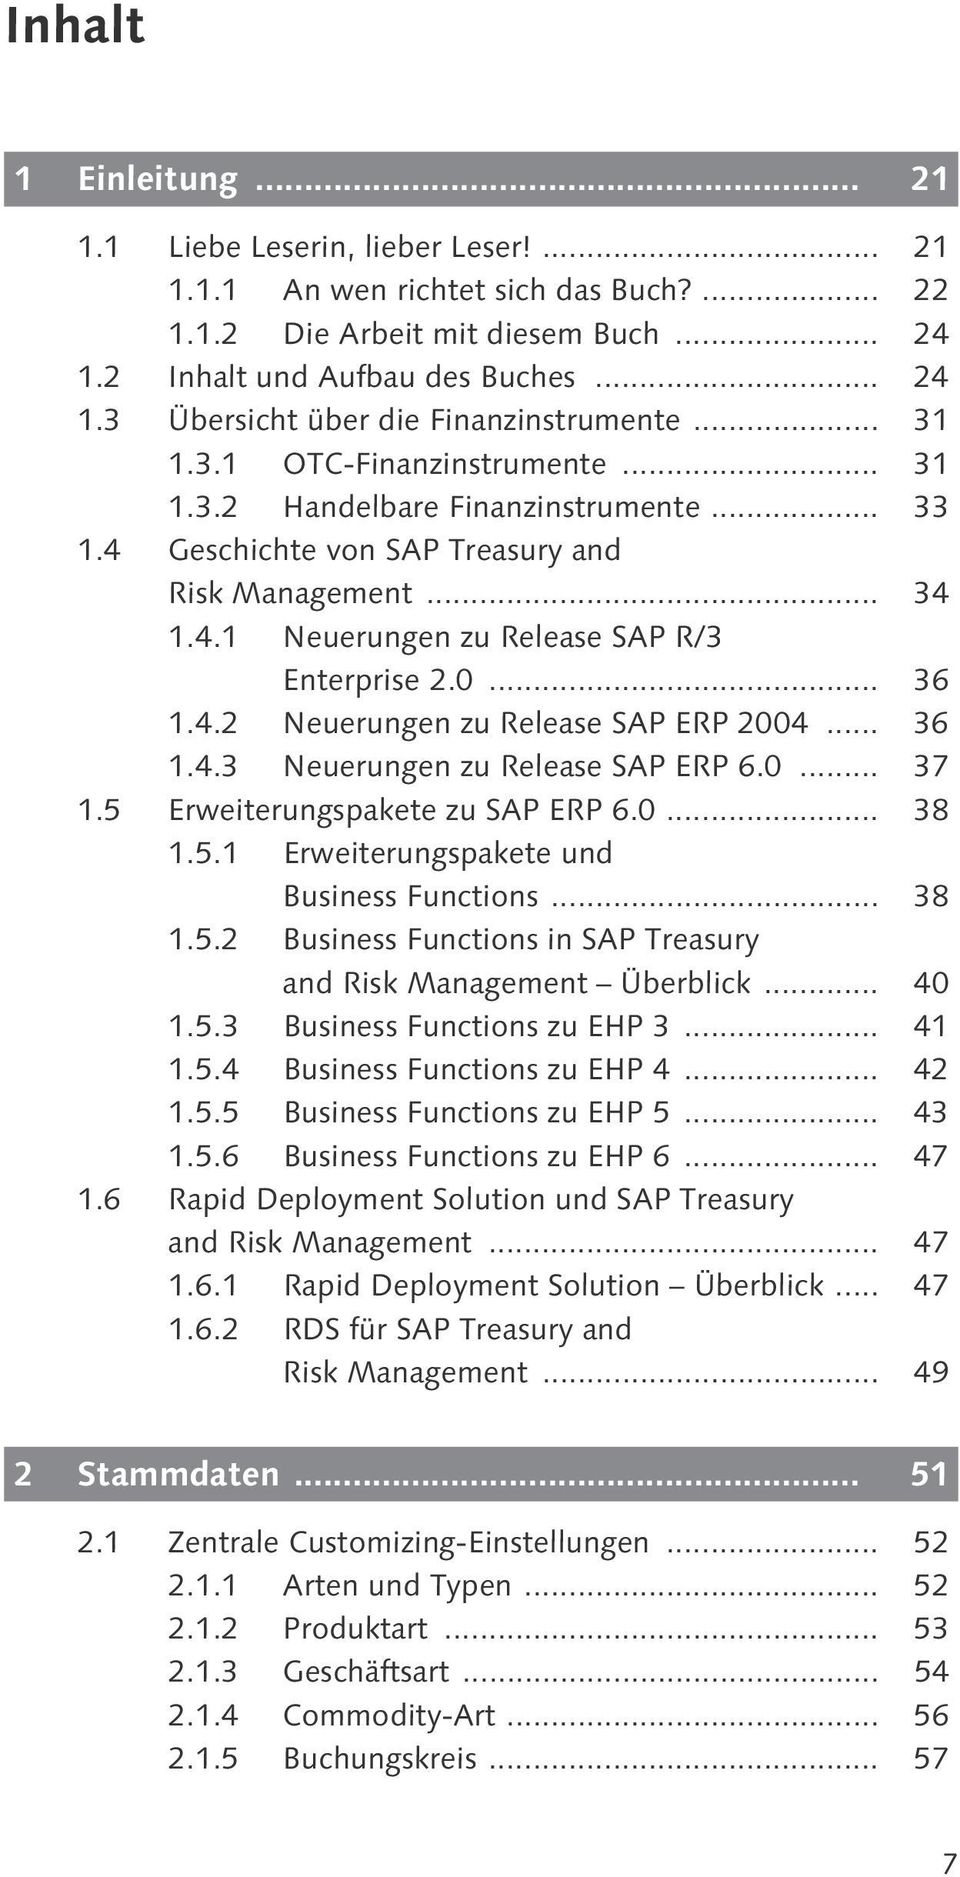 .. 36 1.4.3 Neuerungen zu Release SAP ERP 6.0... 37 1.5 Erweiterungspakete zu SAP ERP 6.0... 38 1.5.1 Erweiterungspakete und Business Functions... 38 1.5.2 Business Functions in SAP Treasury and Risk Management Überblick.